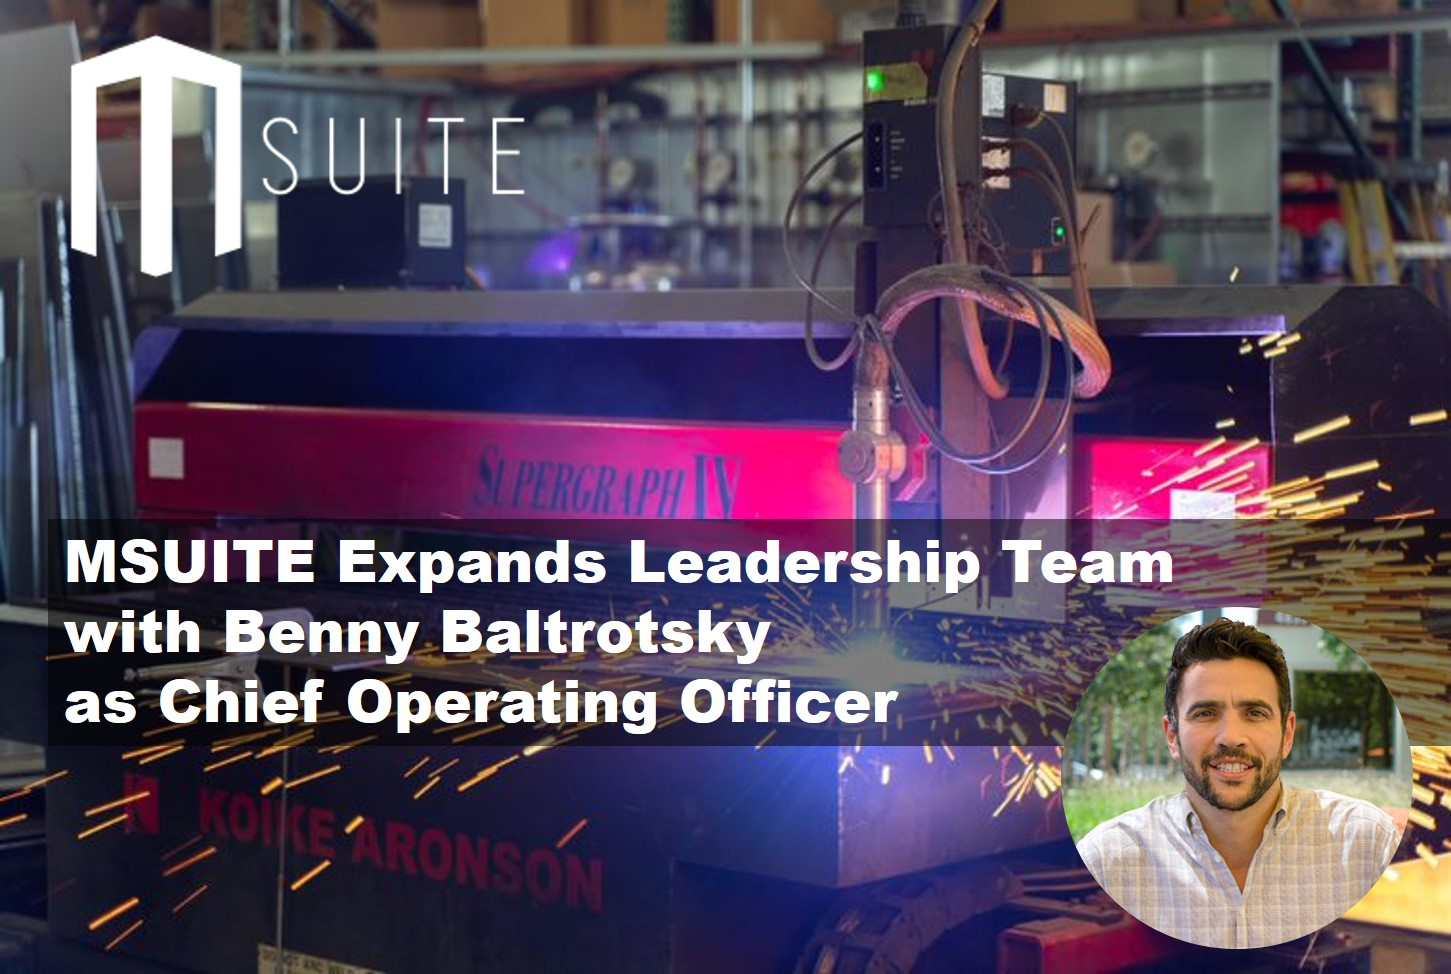 MSUITE Expands Leadership Team with Benny Baltrotsky as Chief Operating Officer